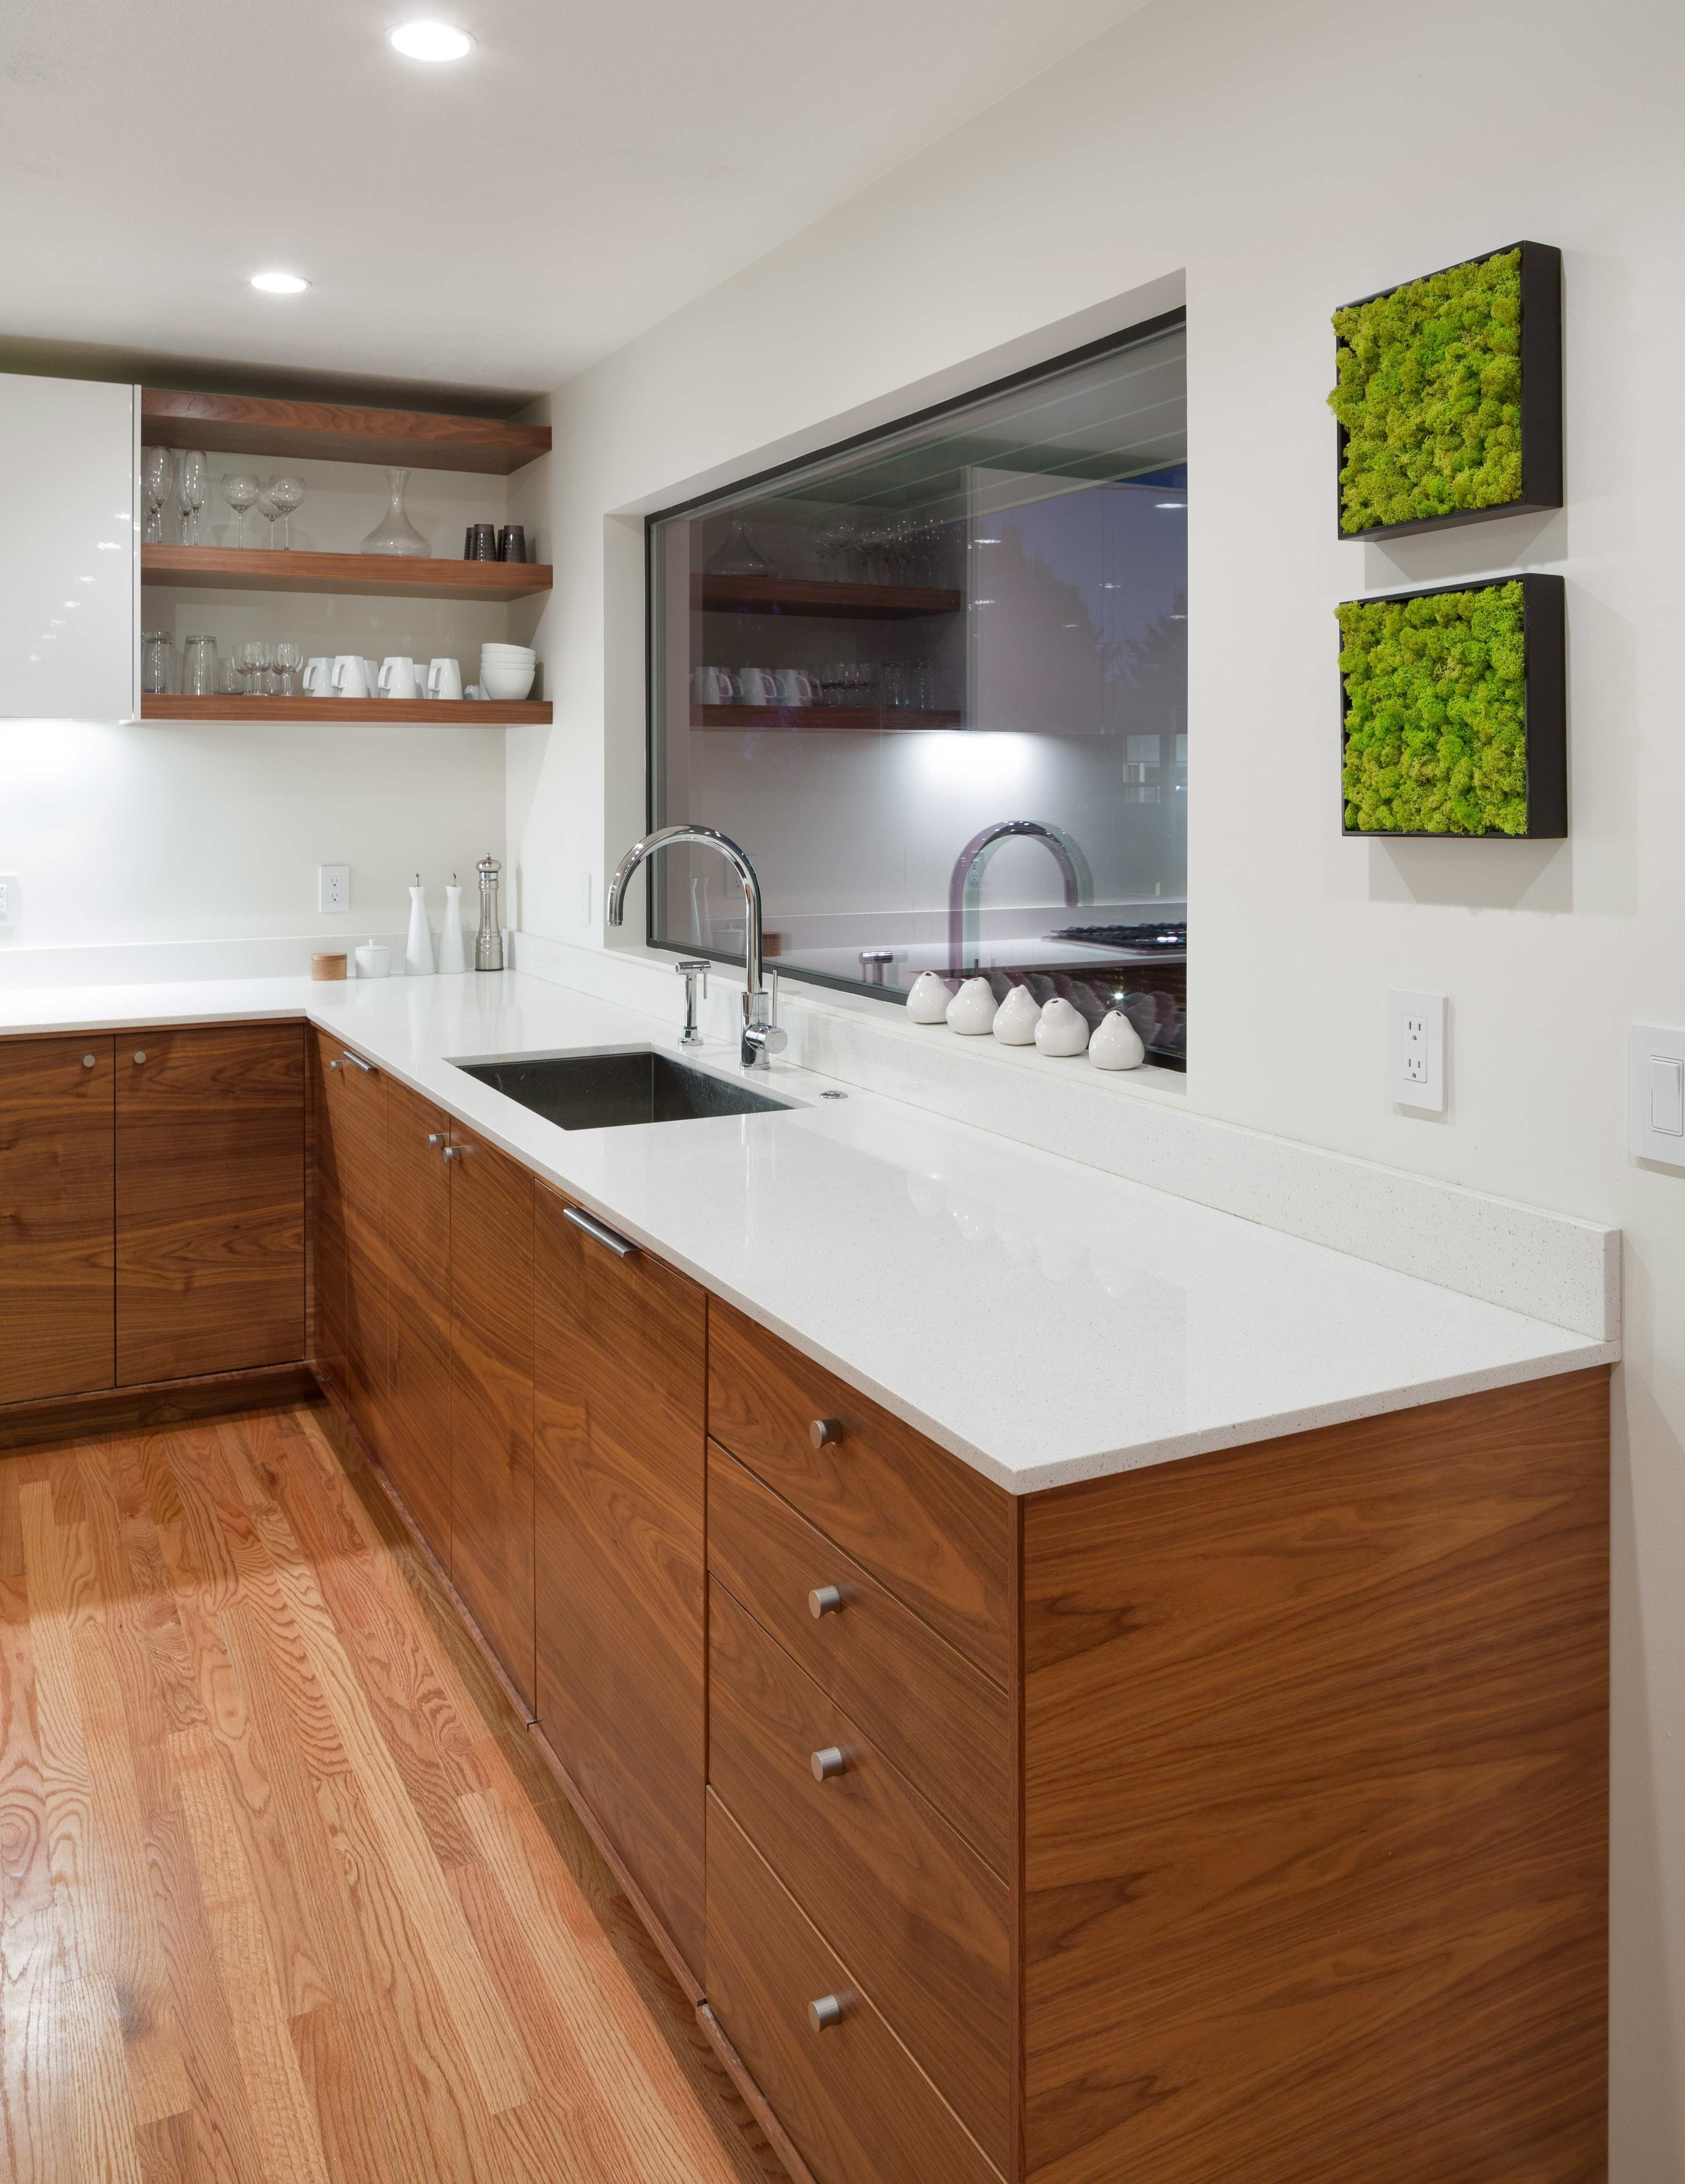 Gallery Of Modern Kitchen Cabinets Design Ideas The Individuals Of Wyong Are Extrem Contemporary Walnut Kitchen Modern Kitchen Design Walnut Kitchen Cabinets